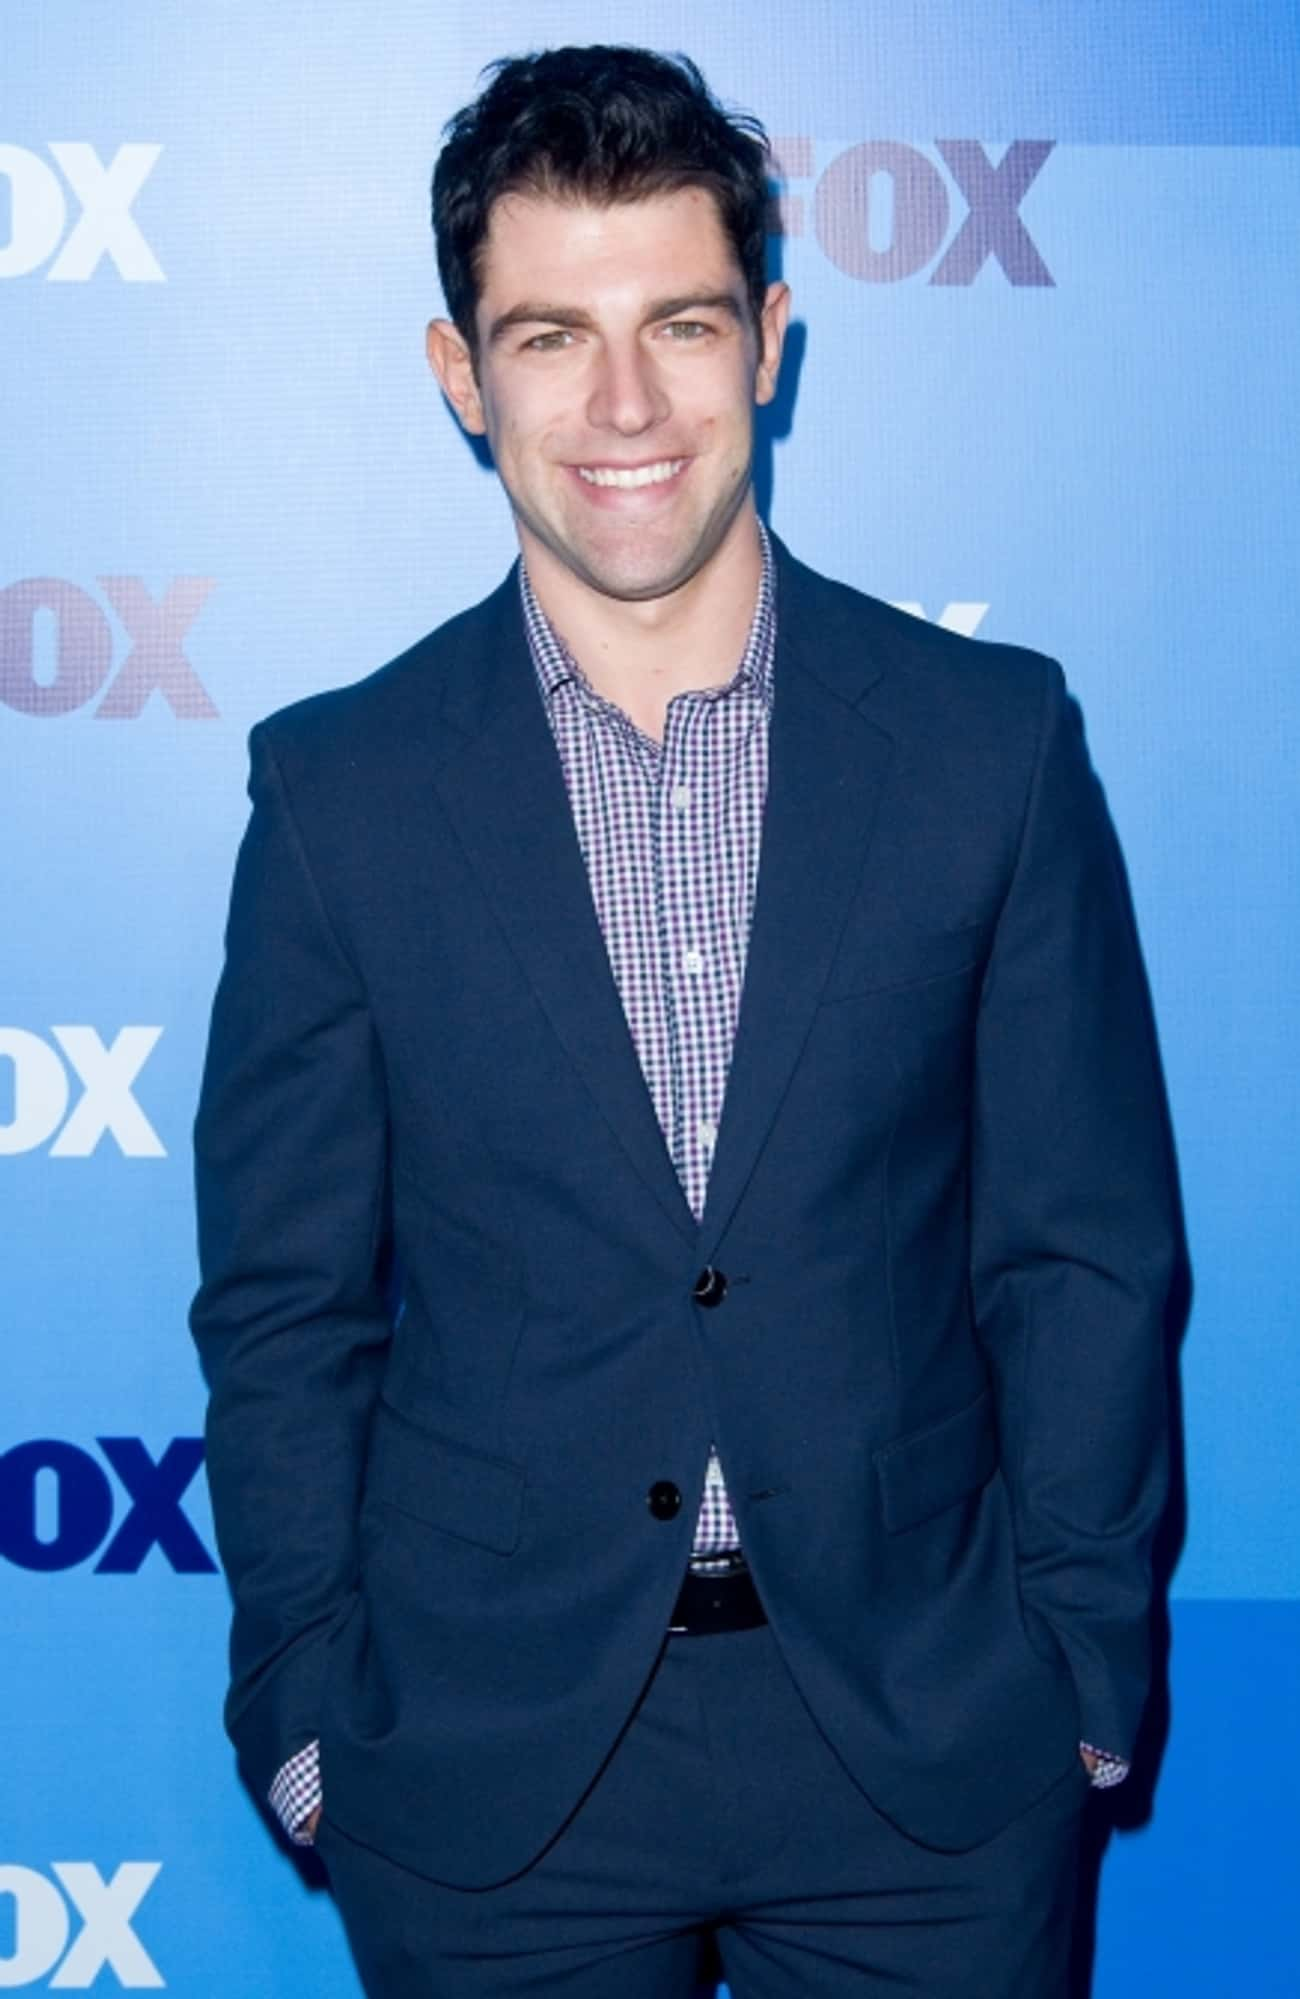 Max Greenfield in Navy Lapel T is listed (or ranked) 3 on the list Hot Max Greenfield Photos